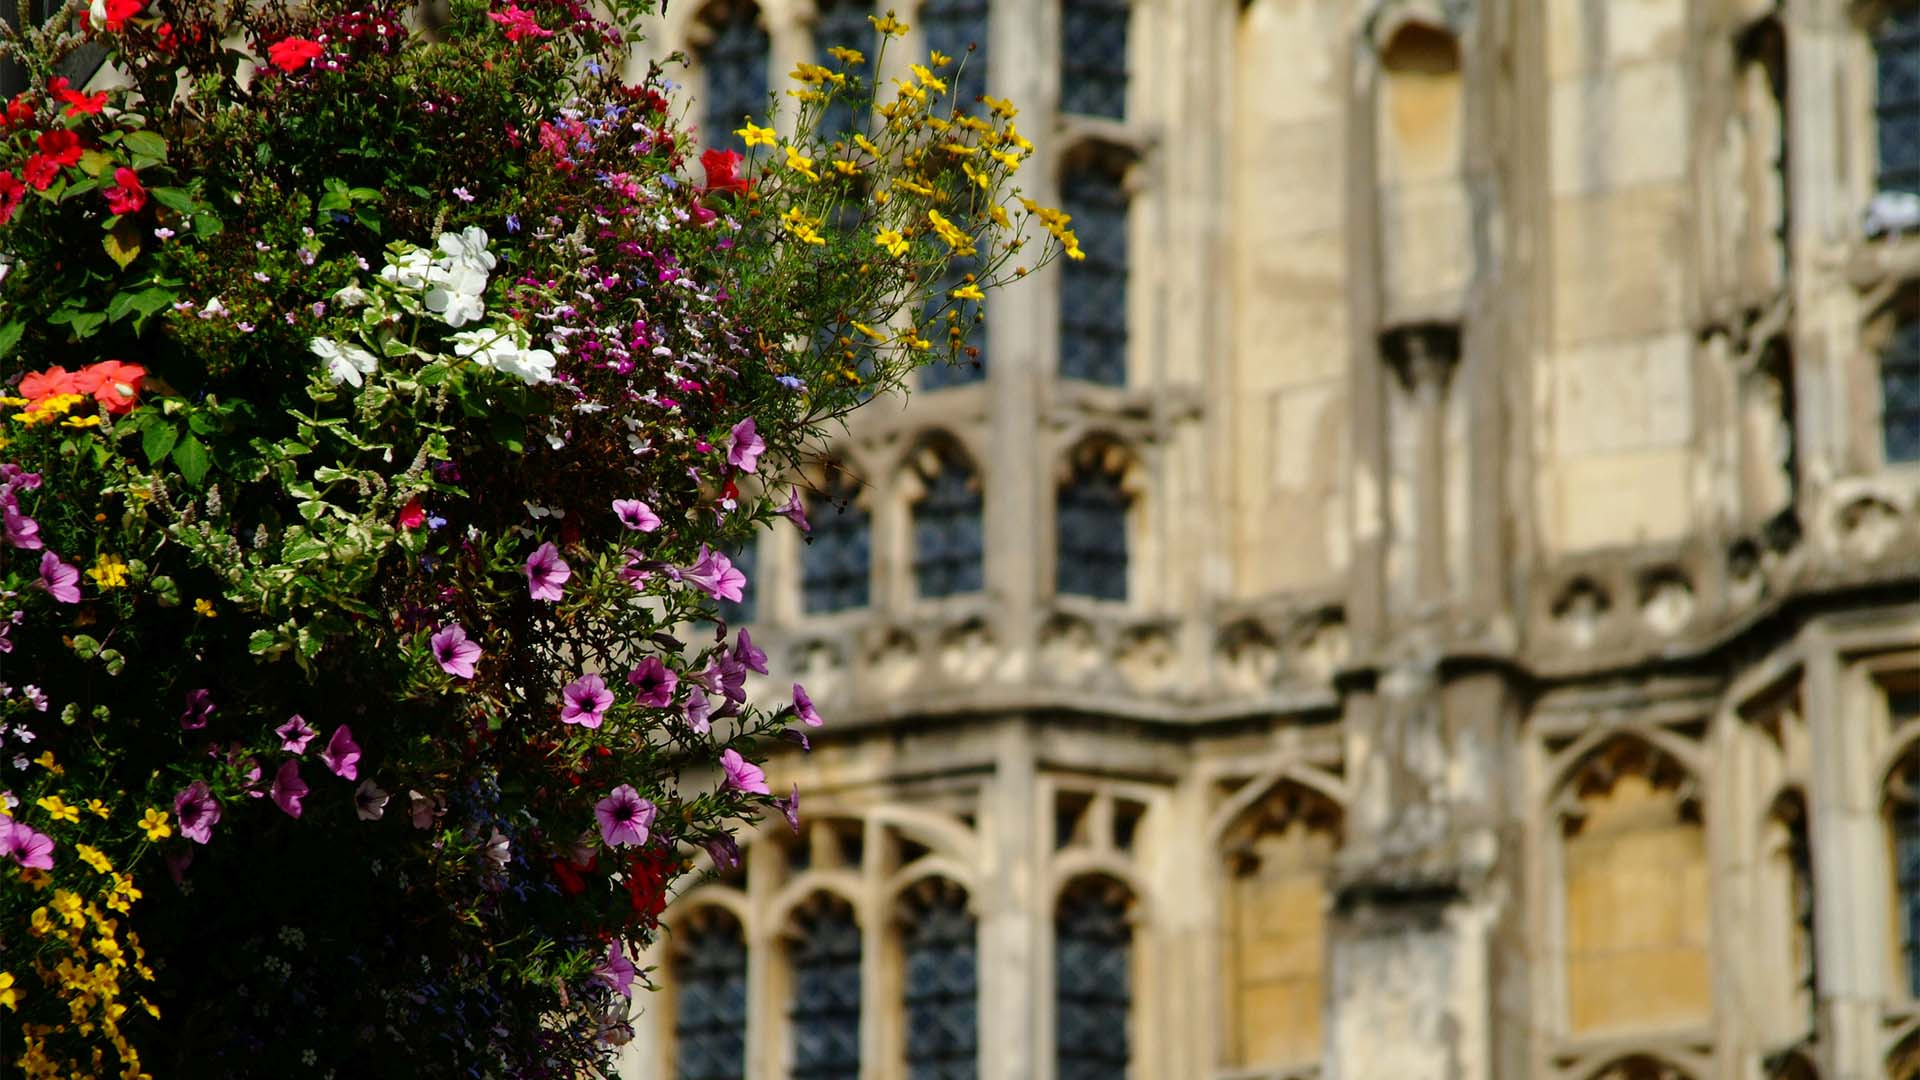 Flowers outside Cirencester's parish church, the Cotswolds